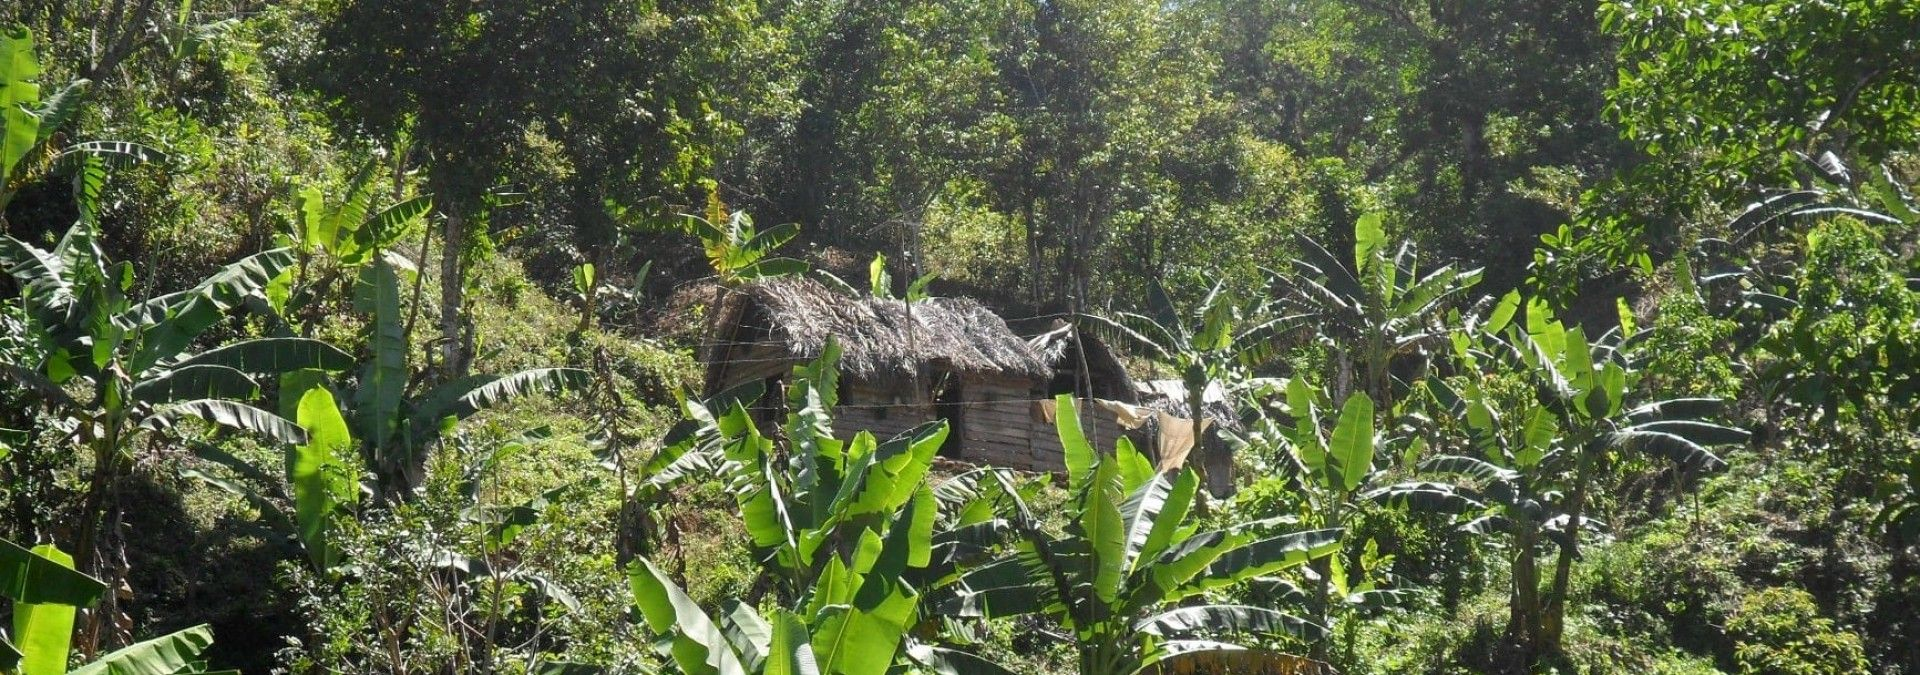 Trekking through forest on varied terrain in Cuba